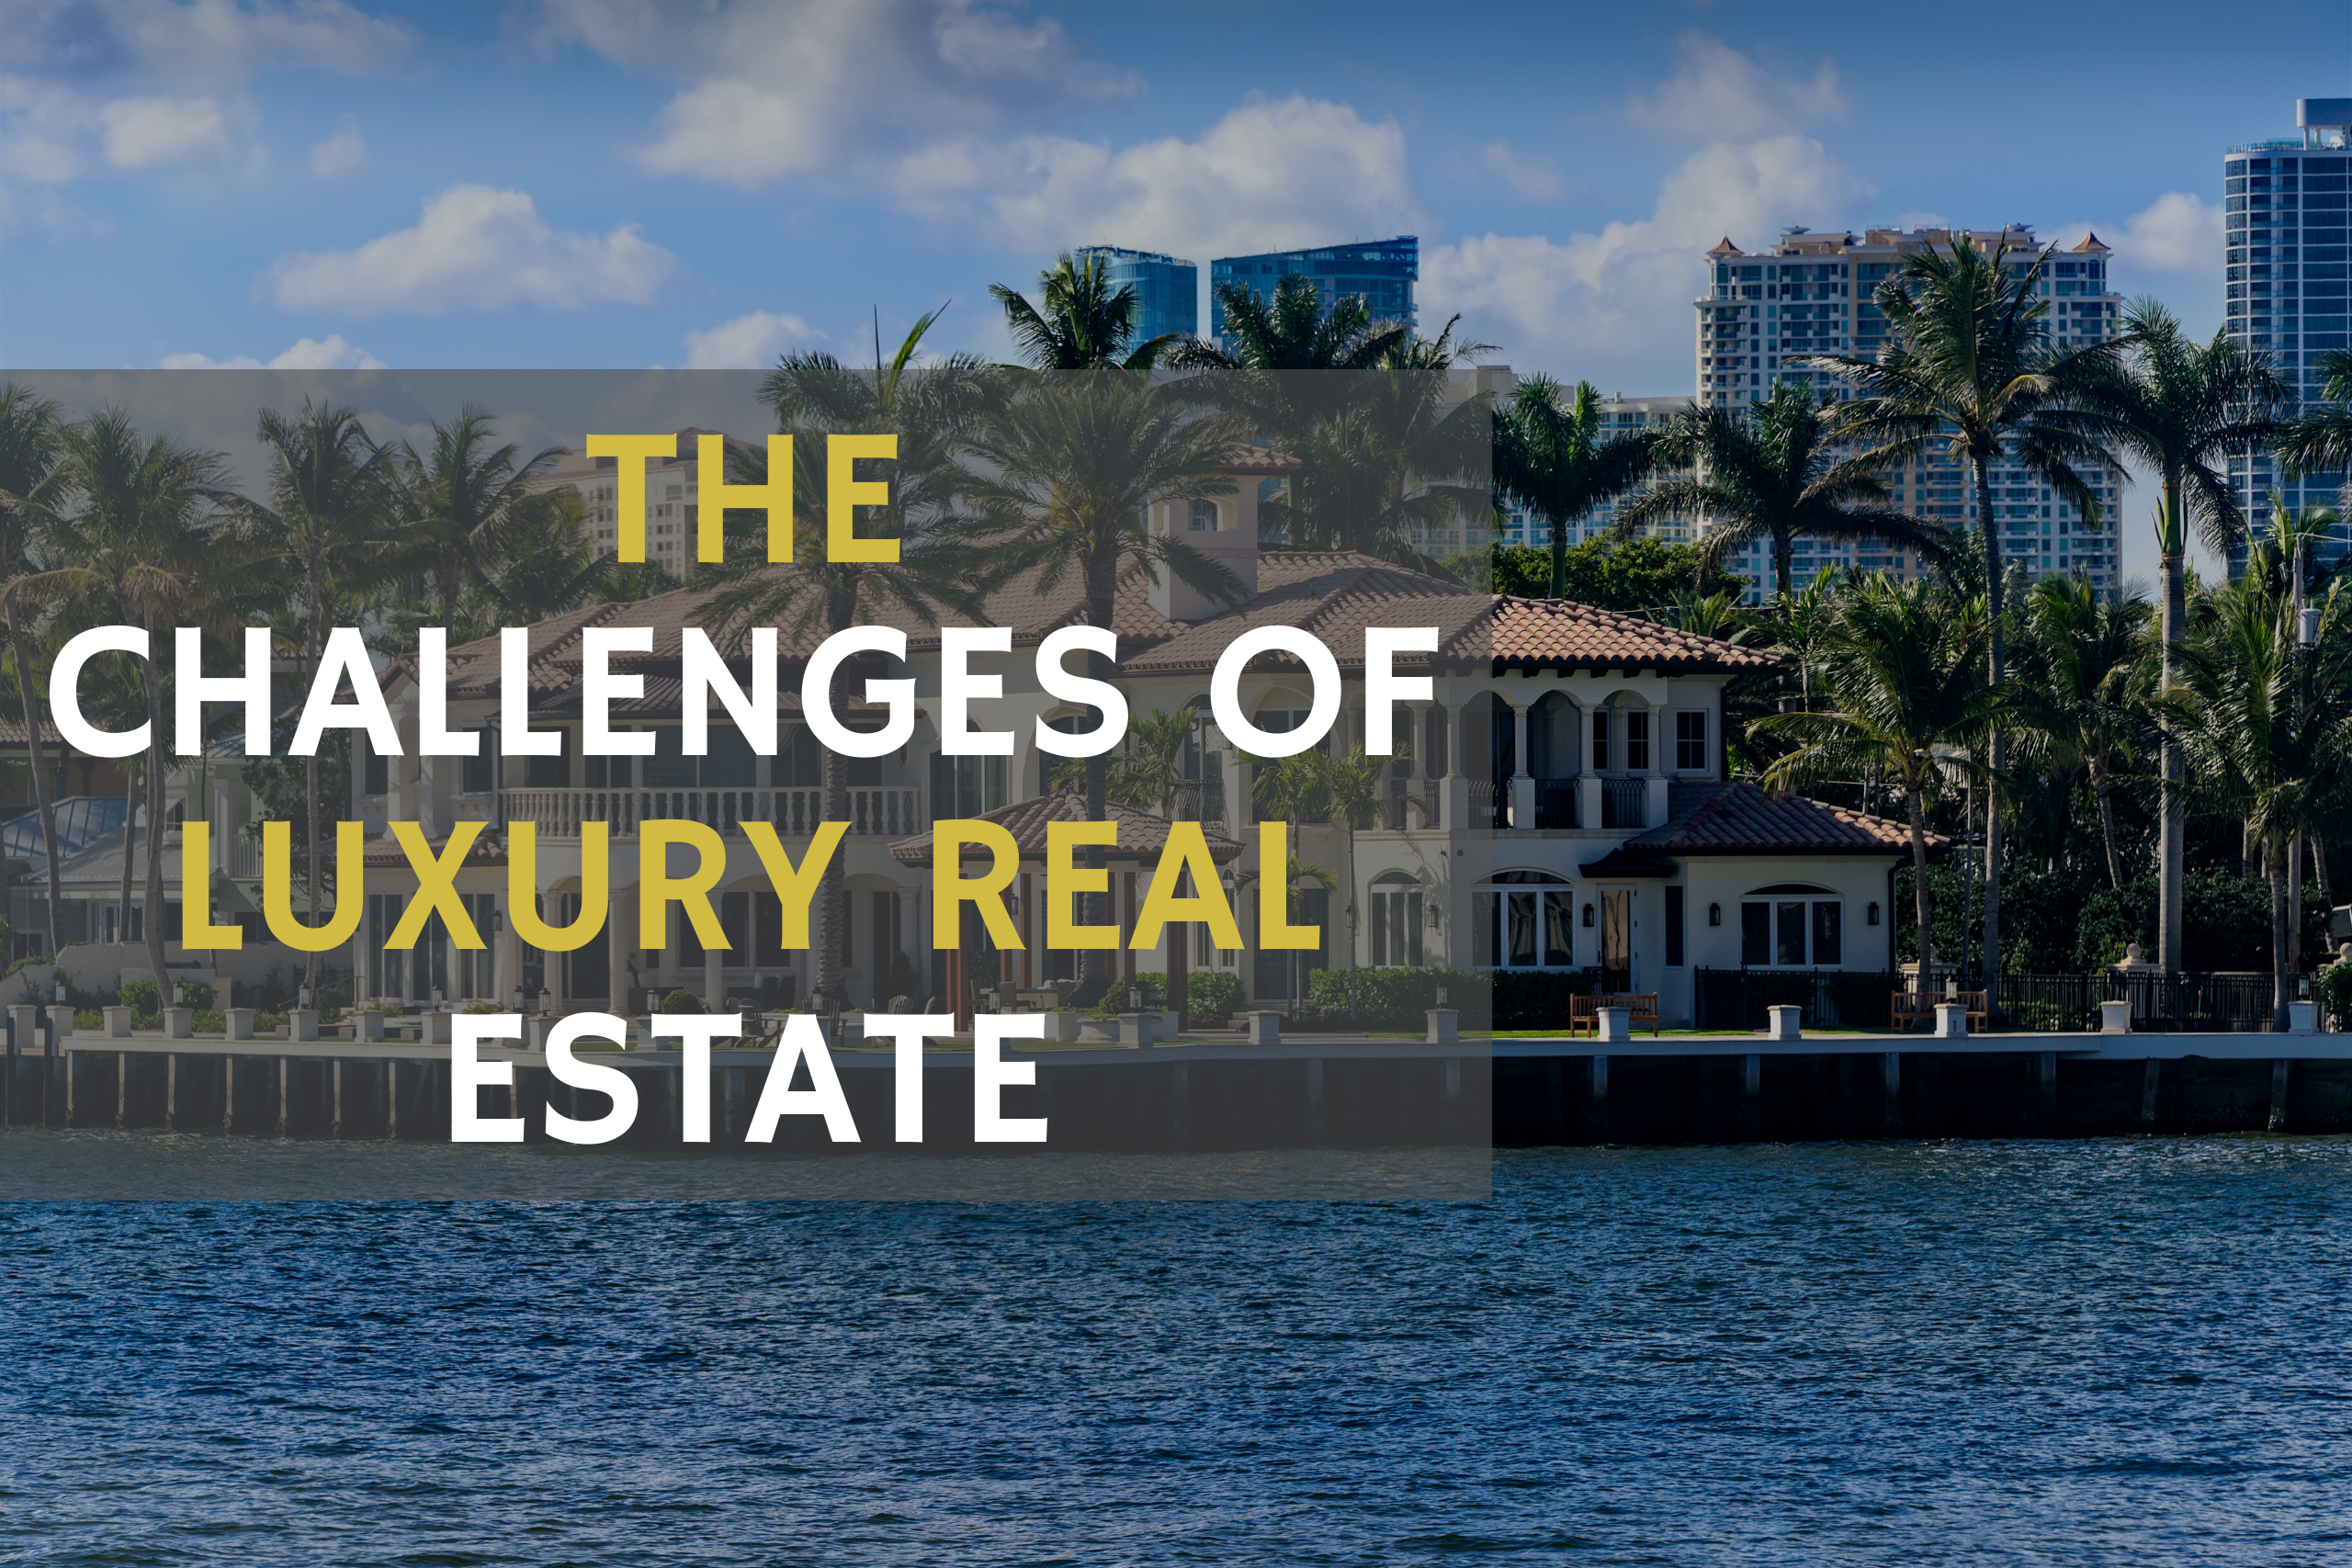 The Challenges of luxury homes